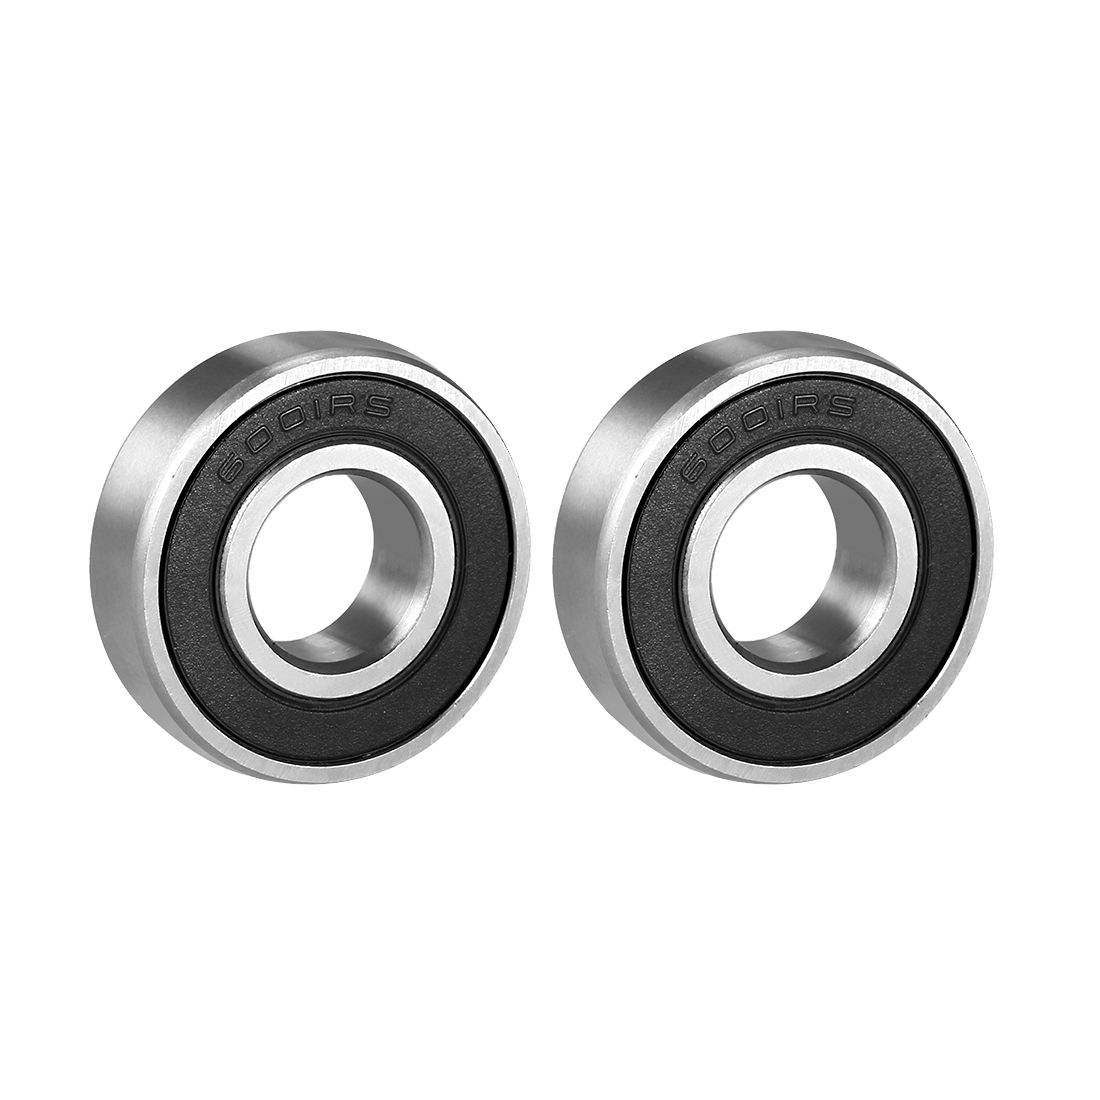 Deep Groove Ball Bearing 6001RS Single Sealed, 12mm x 28mm x 8mm Chrome Steel Bearings, 1-Pack